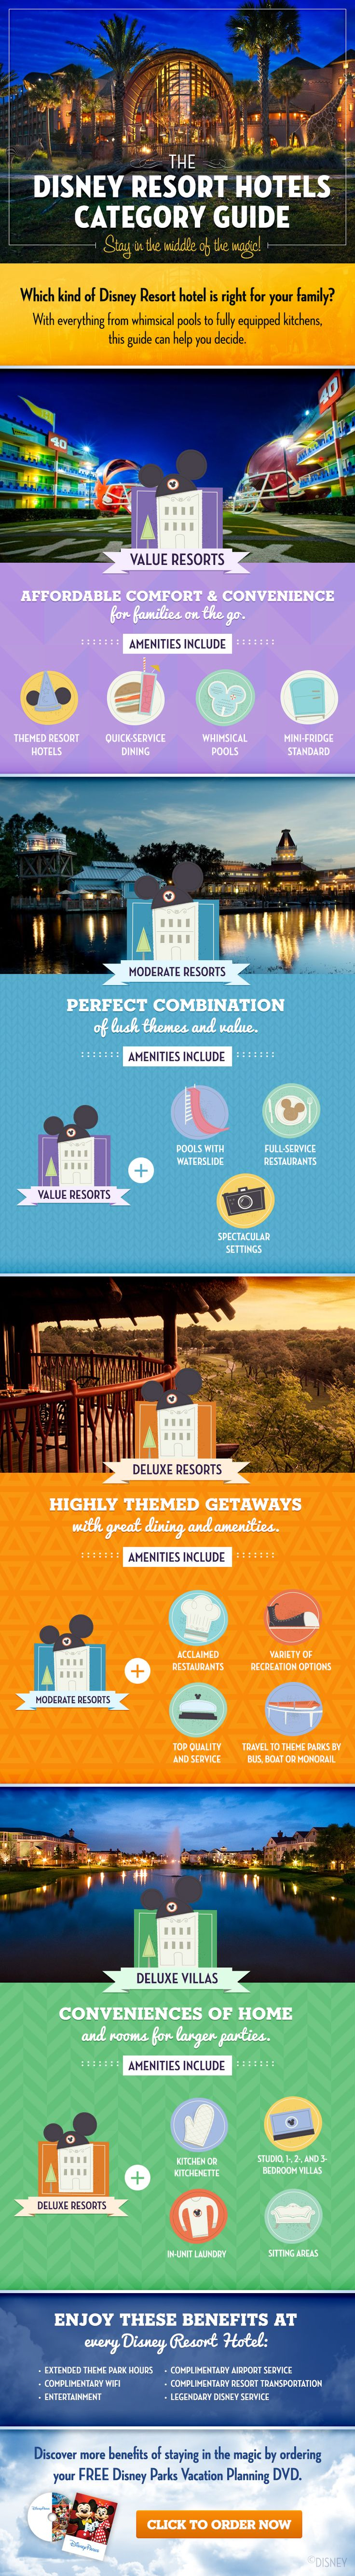 Learn which kind of Disney Resort hotel is right for your family at Walt Disney World! #DisneyPlanning at www.ourlaughingplace.com tammy@olptravel.com